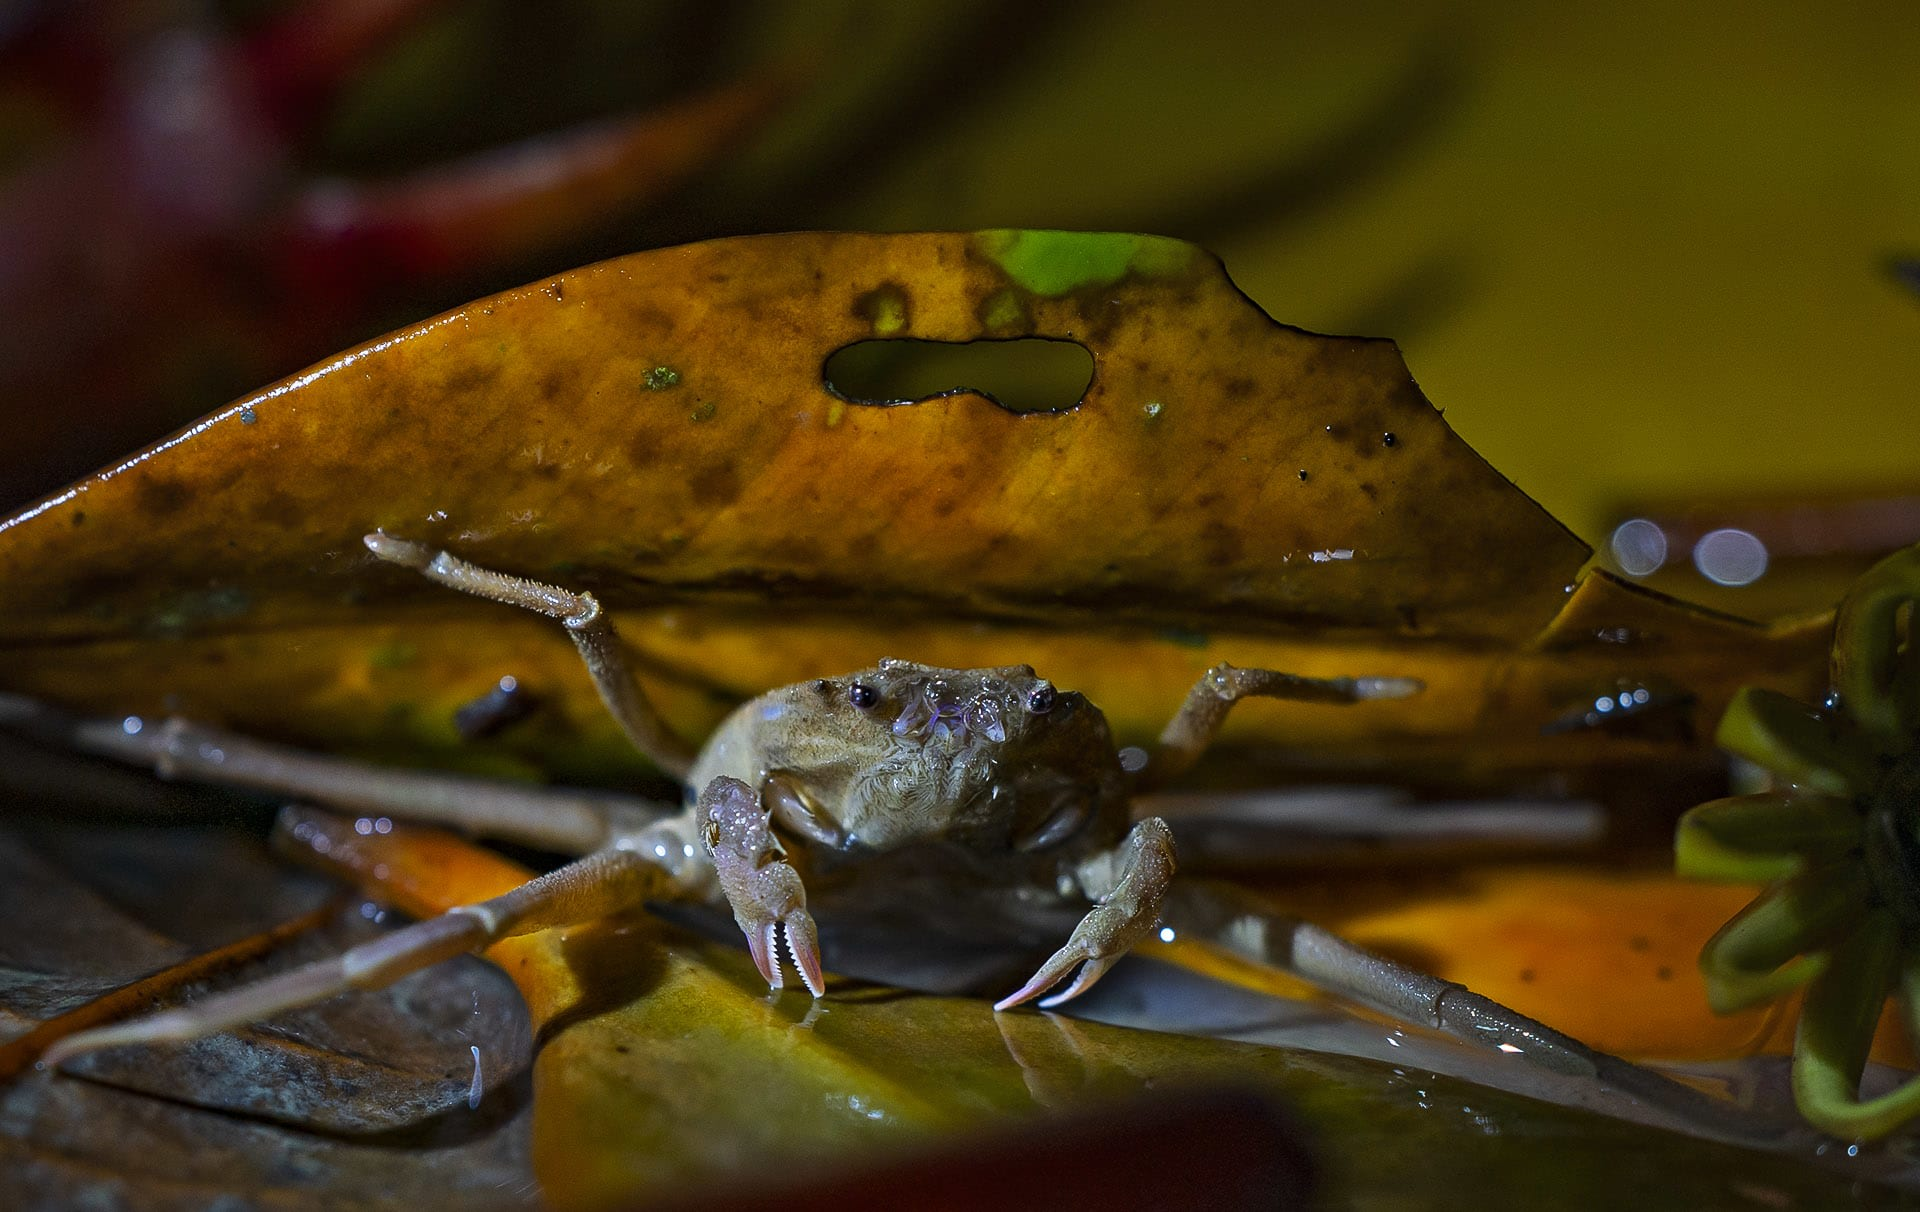 Crabs are essential to the mangrove ecosystem. They are responsible for aerating the soil, reshuffling layers of clay and sediment, and helping nutrient transfer among those layers. Because of these contributions, they are often called ecosystem engineers. Additionally, they are efficient burrowers who pierce holes and aerate the compact oxygen-starved soil, benefitting the mangroves as well.